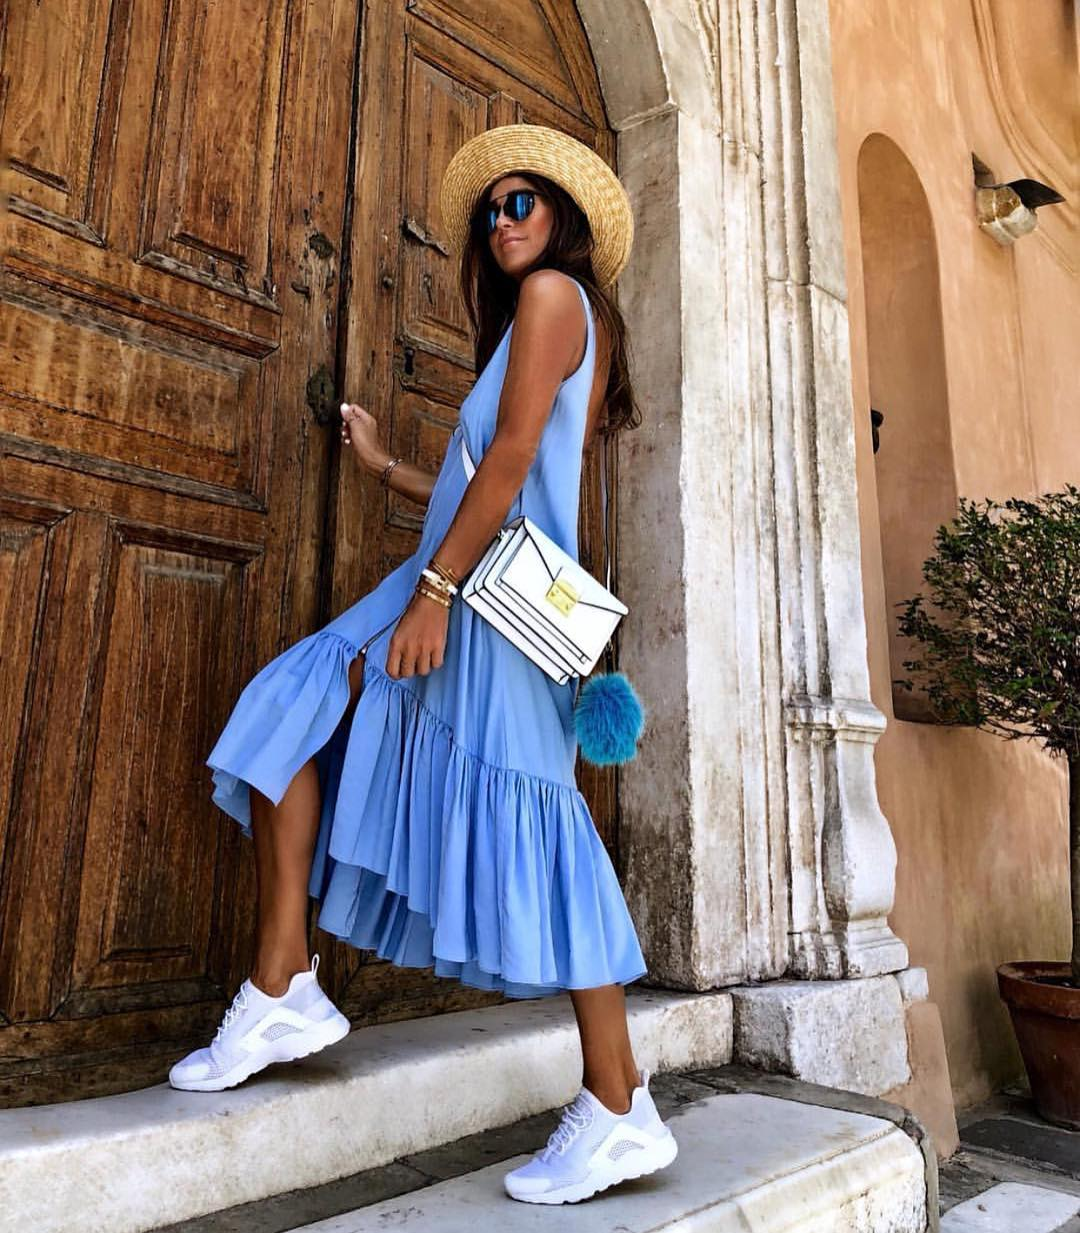 Light Blue Sleeveless Midi Dress With White Sneakers And Straw Wide Brim Hat 2019